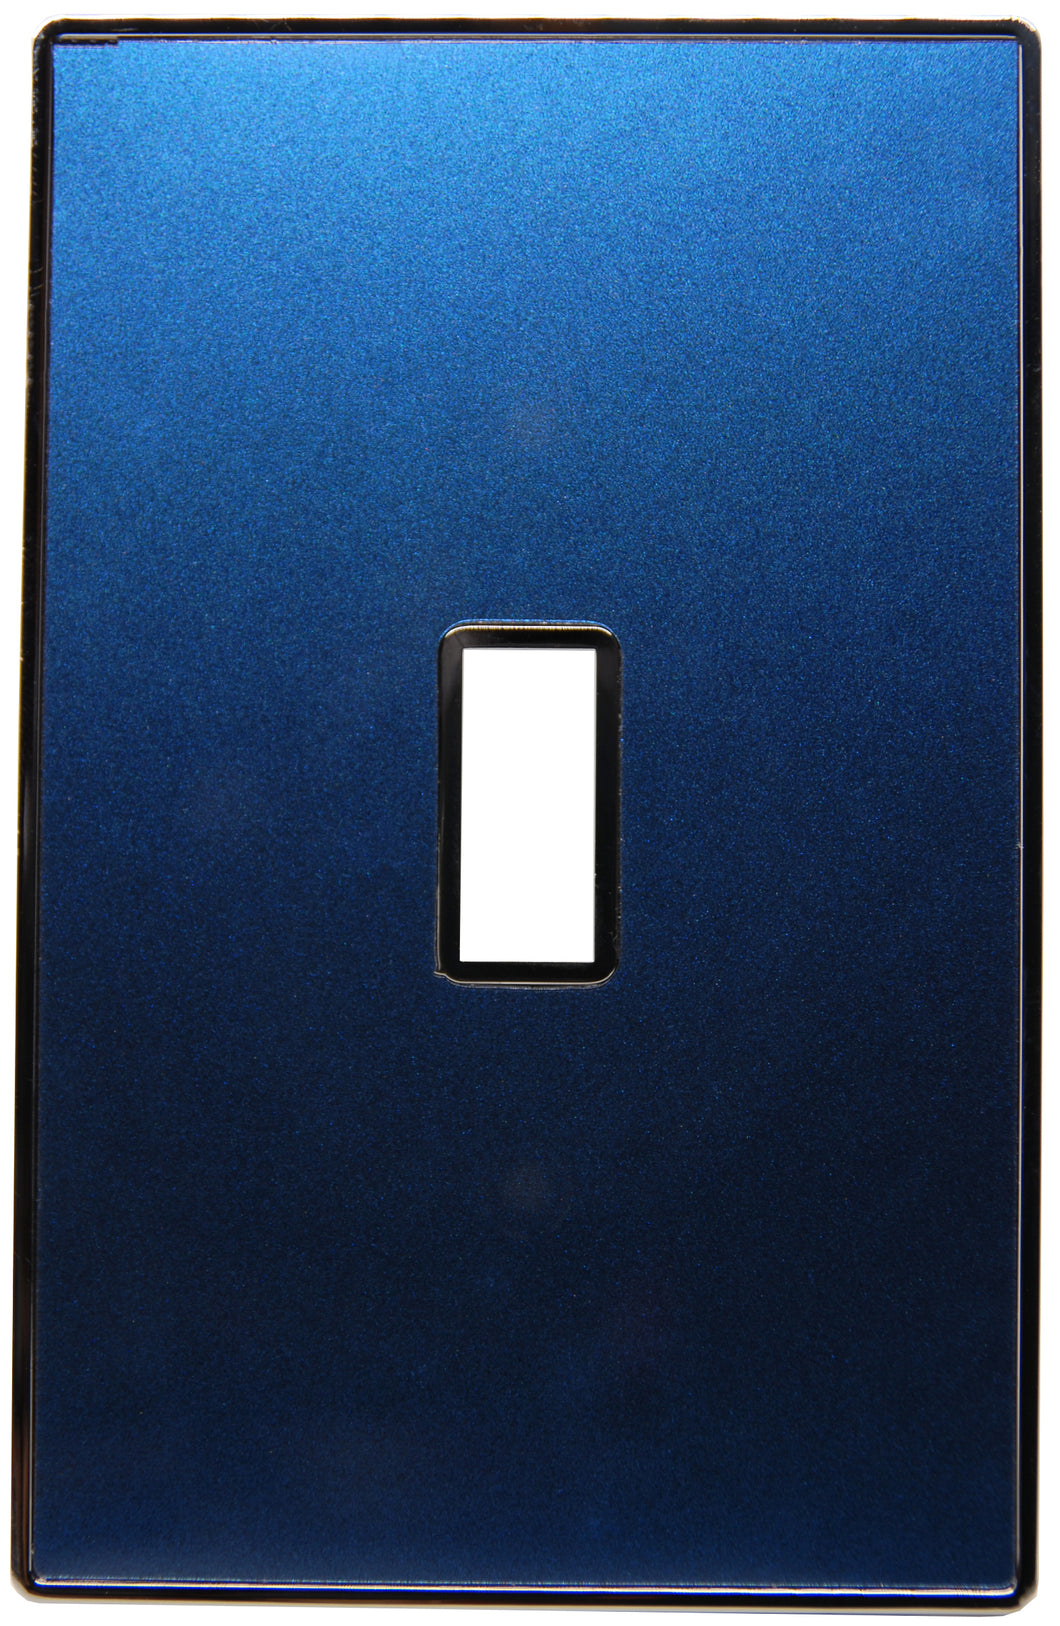 UC28 Deep Blue Pearl/ 1-Gang Toggle Cover & Chrome Frame